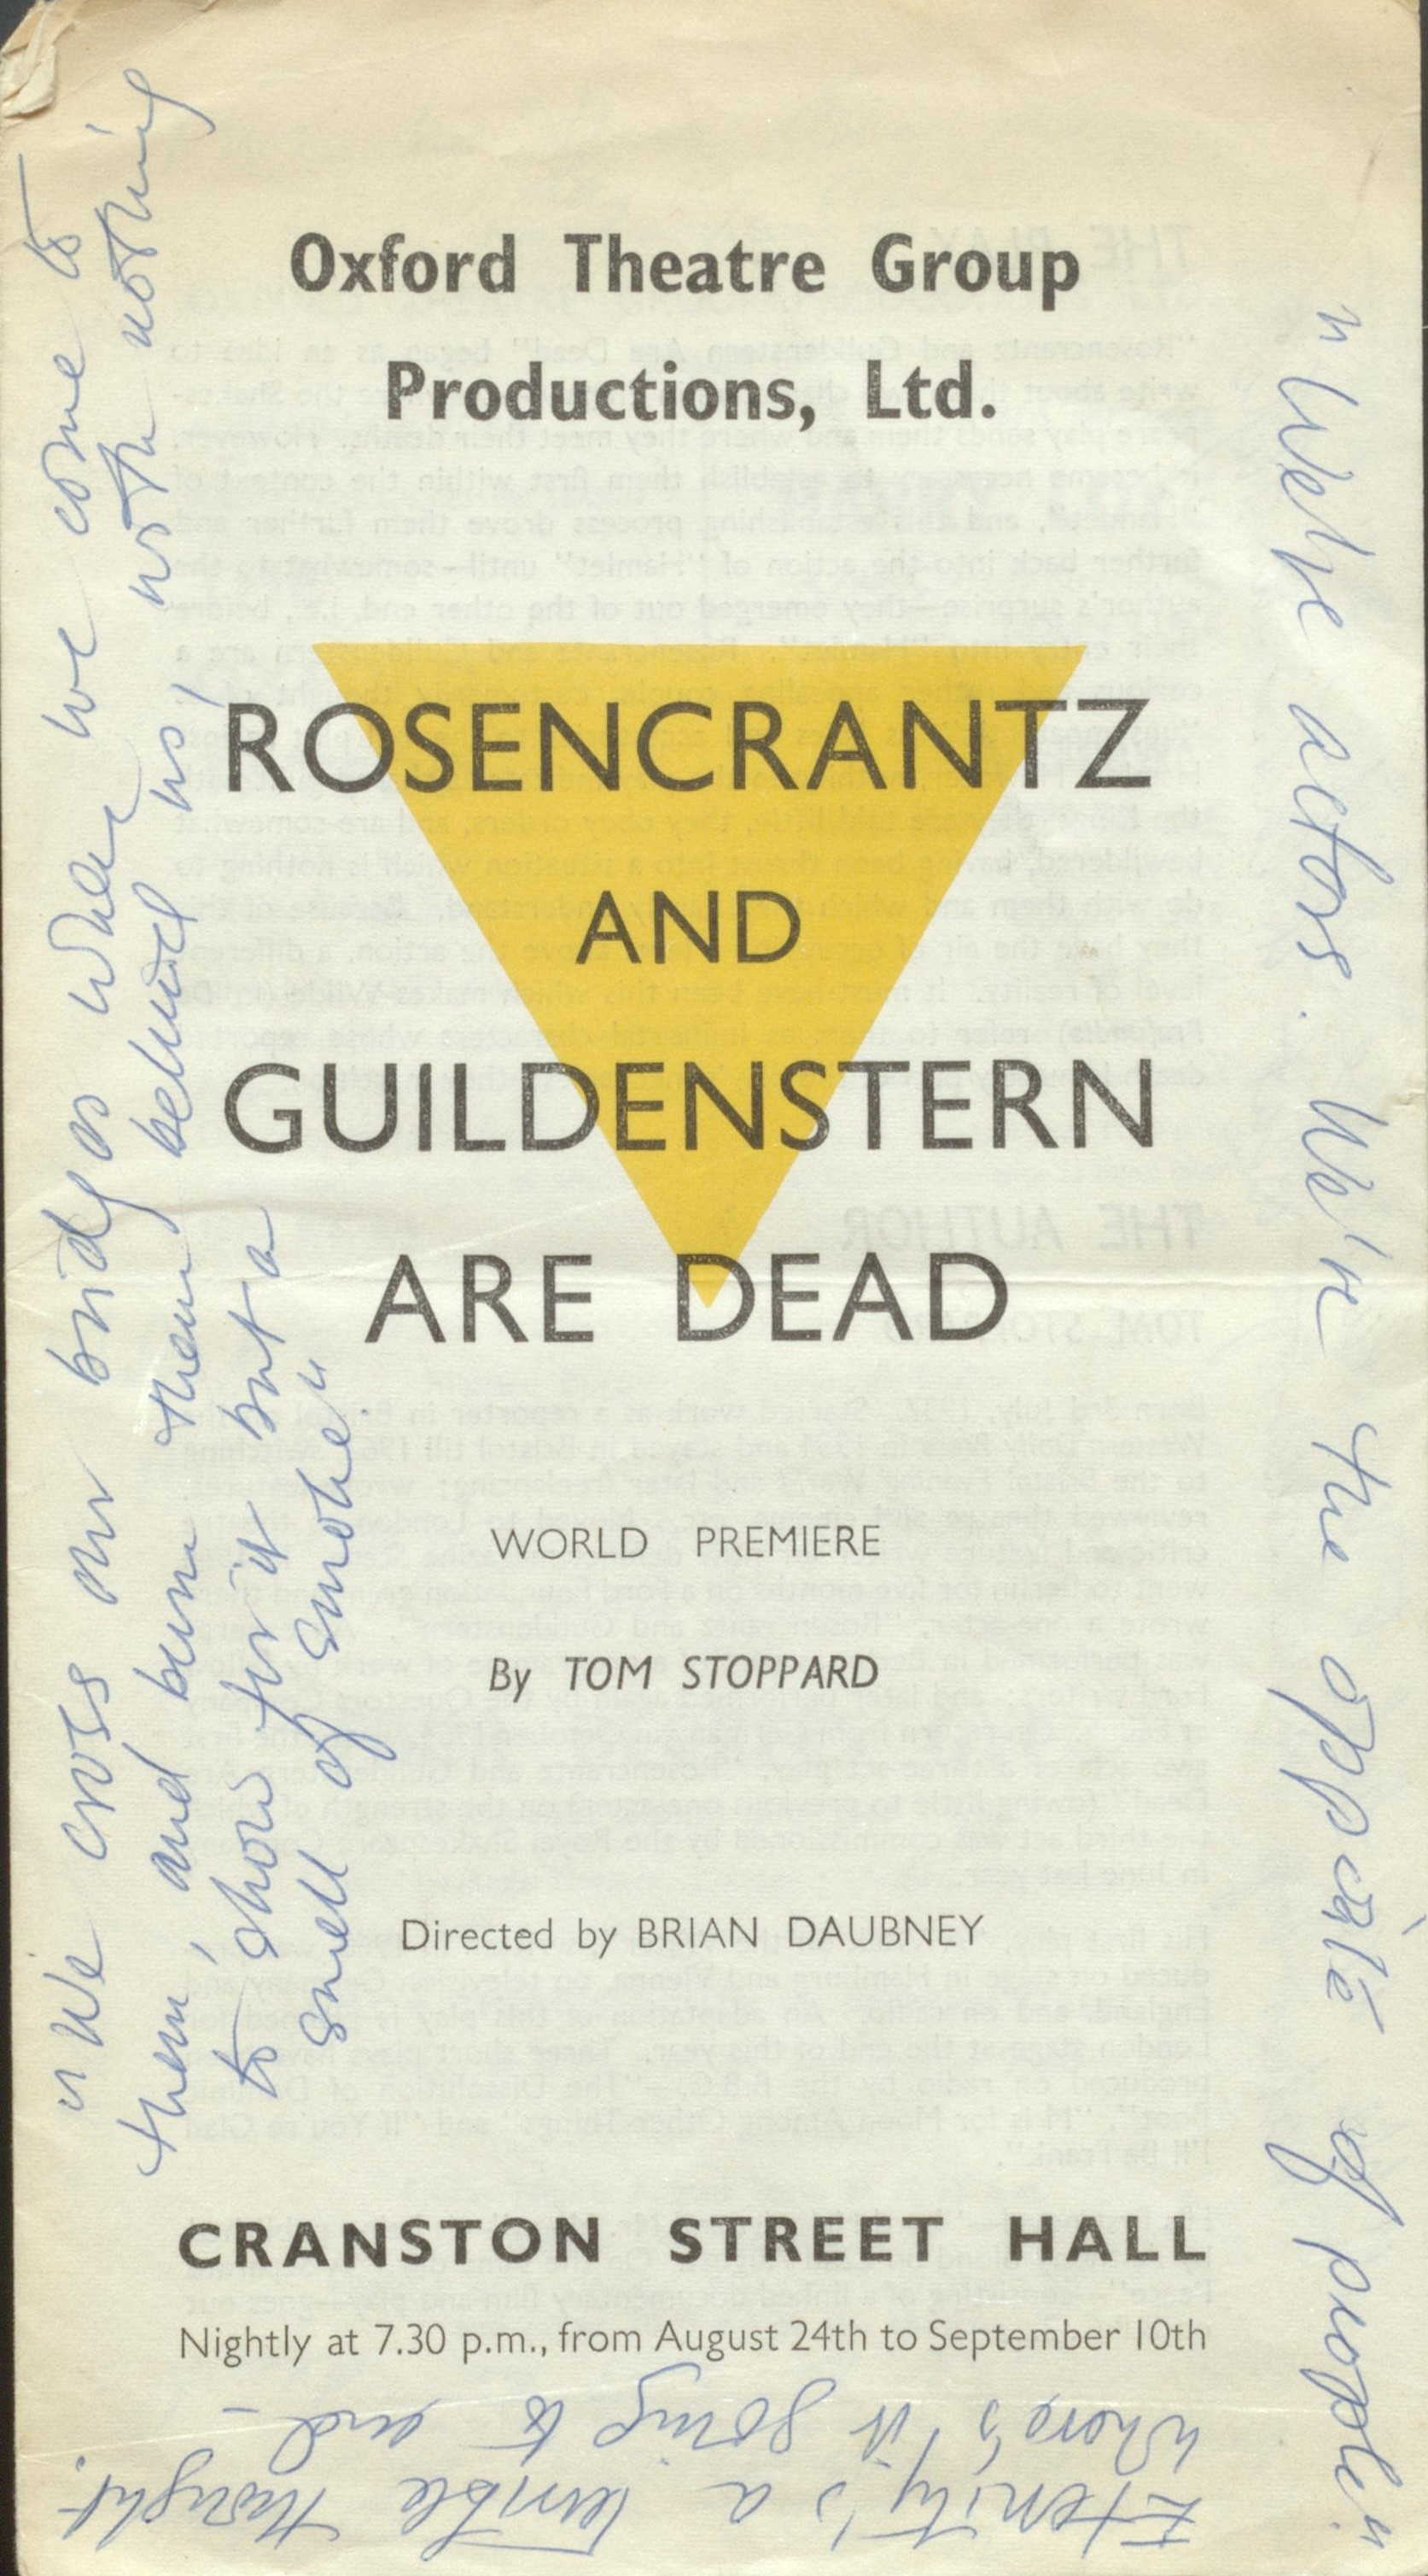 an overview of rosencrantz and guildenstern are dead a play by tom stoppard